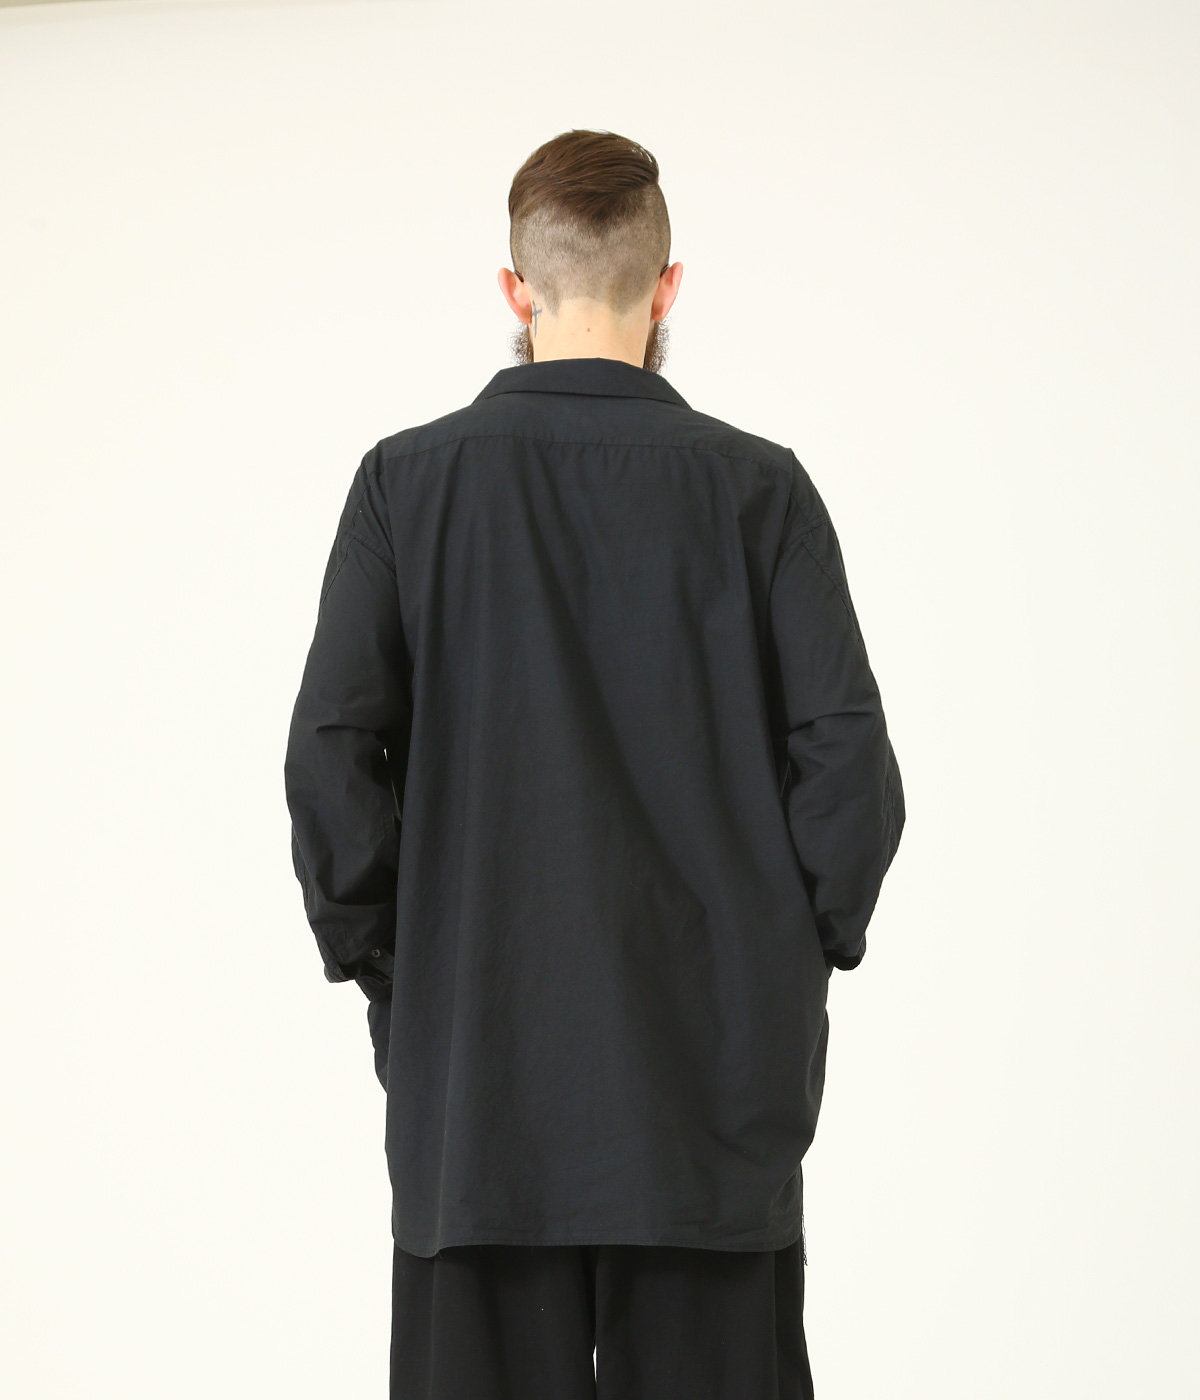 COTTON 80/ SLIK 20 120/2 BROAD SKIPPER SHIRT